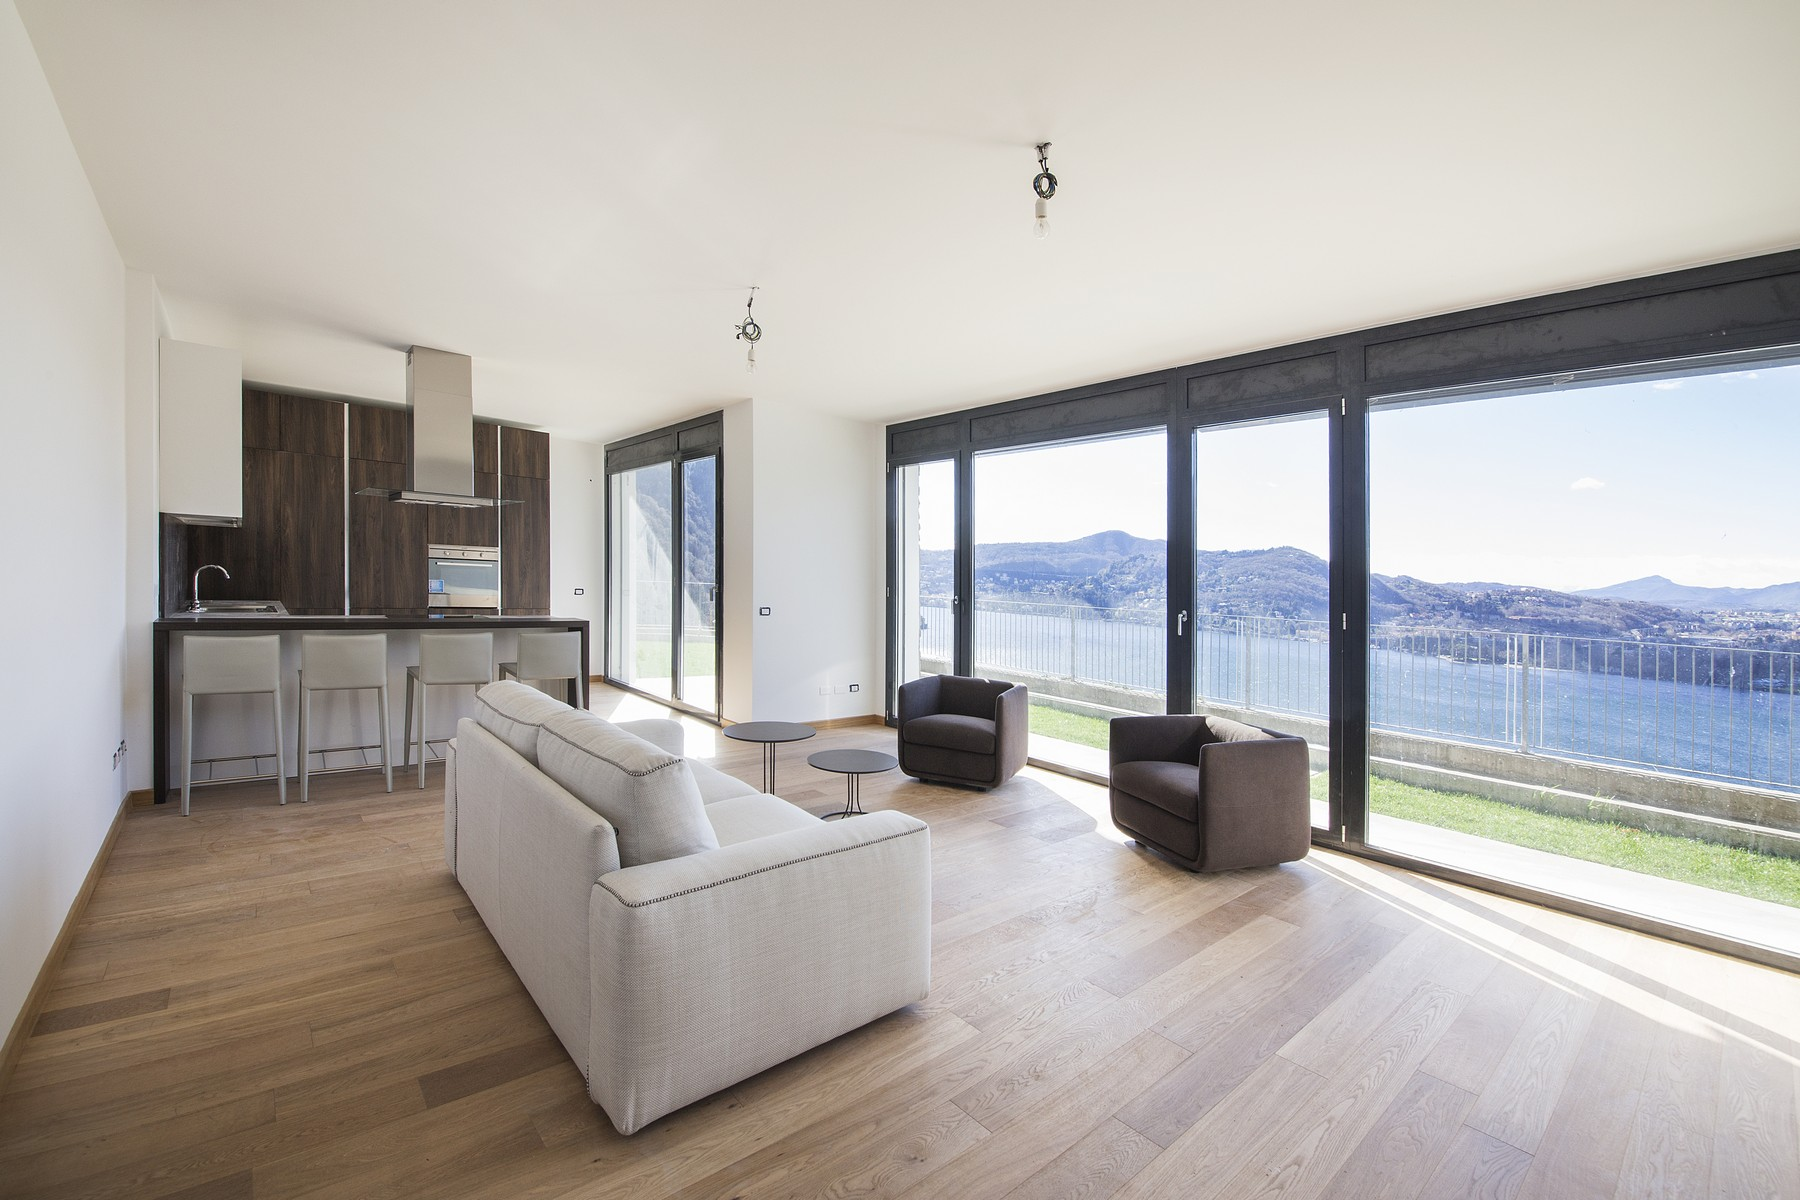 Apartment for Sale at Modern apartment with private garden and amazing lake views Via Caronti Blevio, Como 22020 Italy